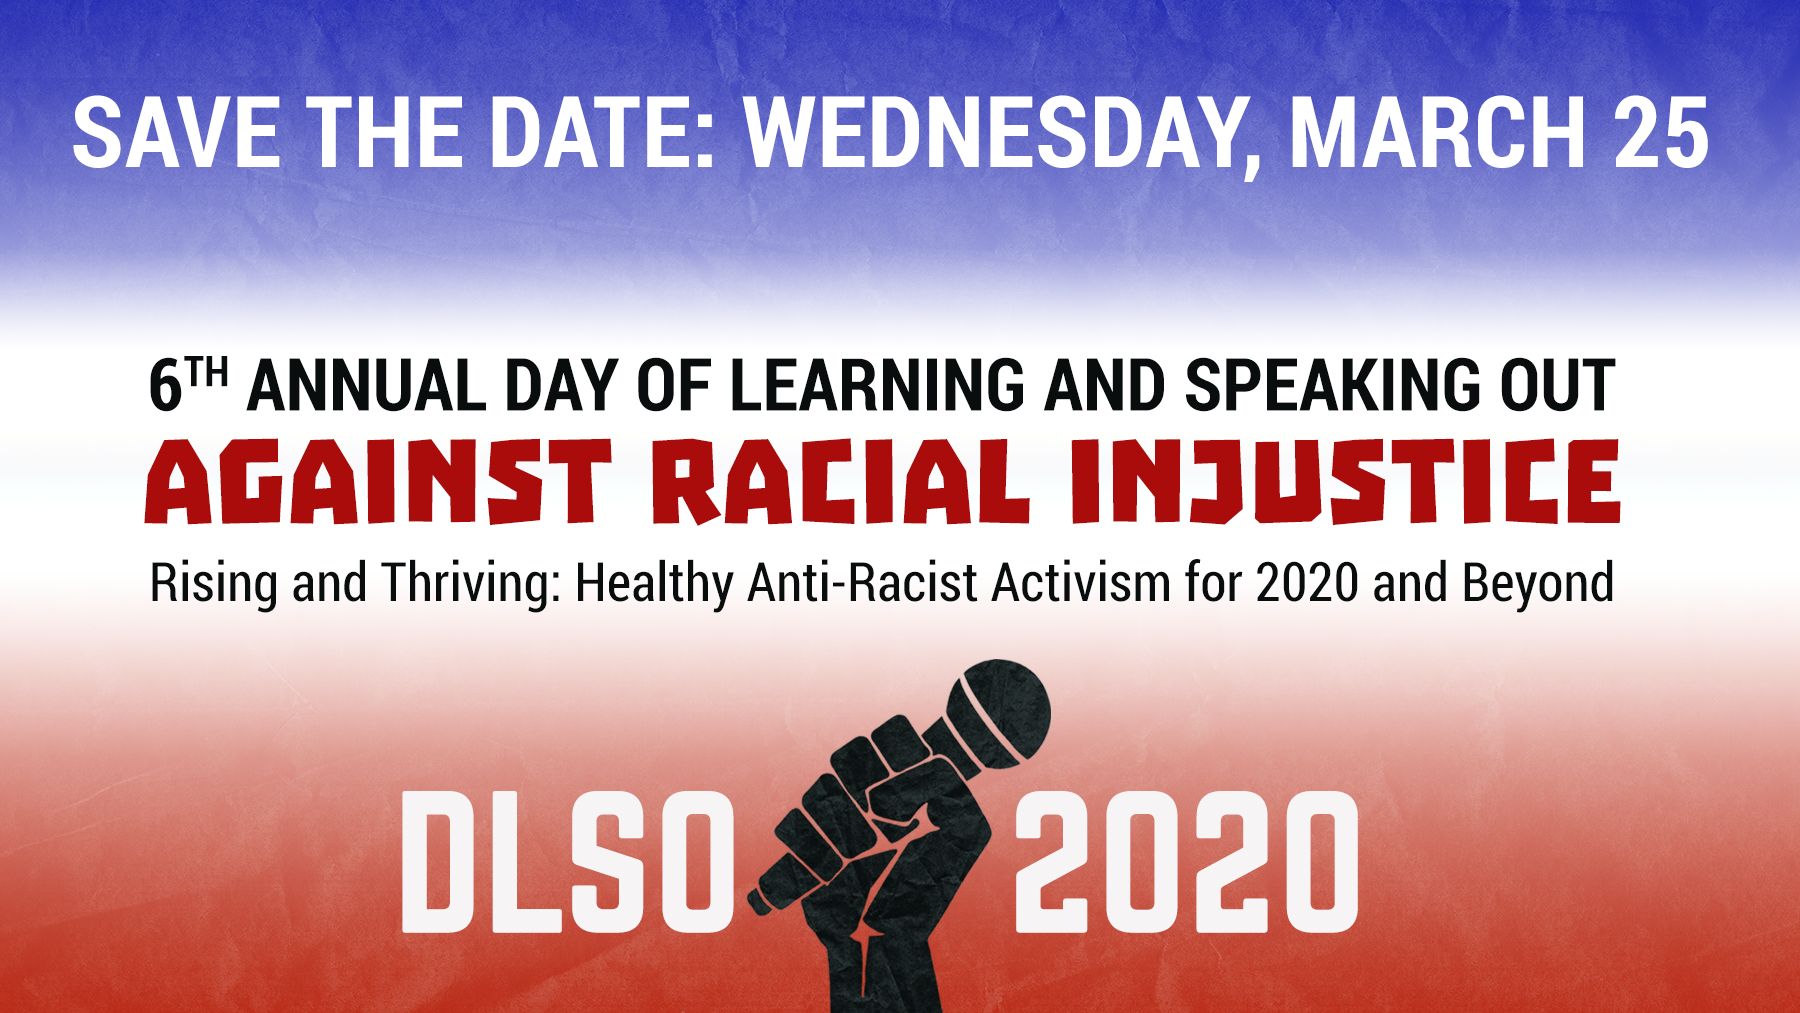 Save-the-Date image for DLSO 2020